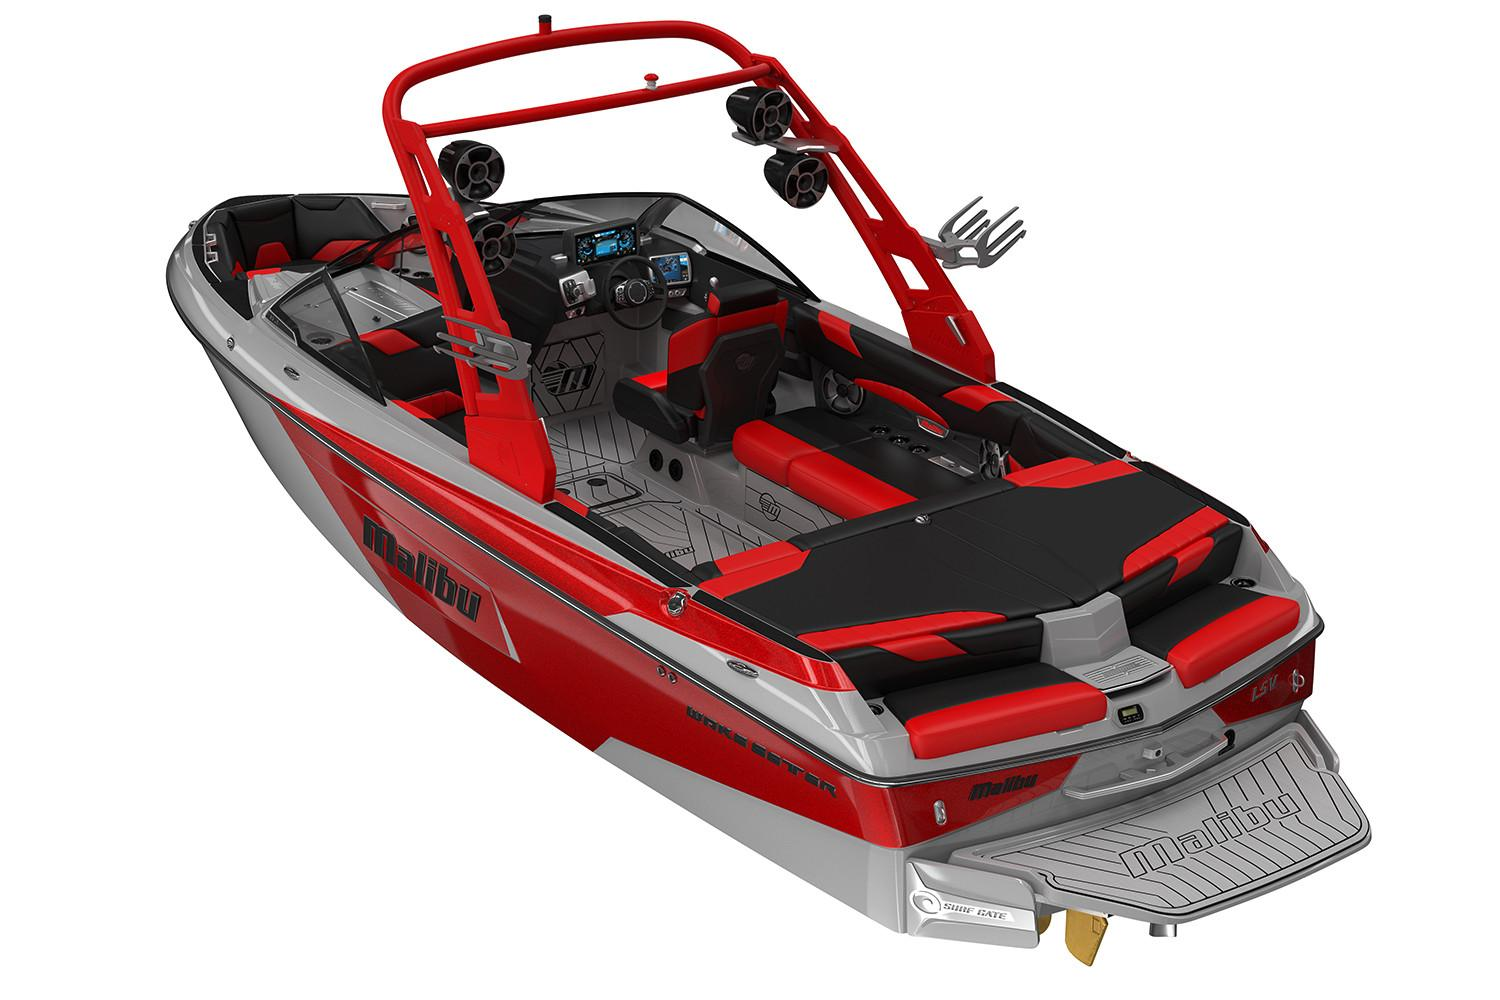 2019 Malibu Wakesetter 23 LSV in Memphis, Tennessee - Photo 26